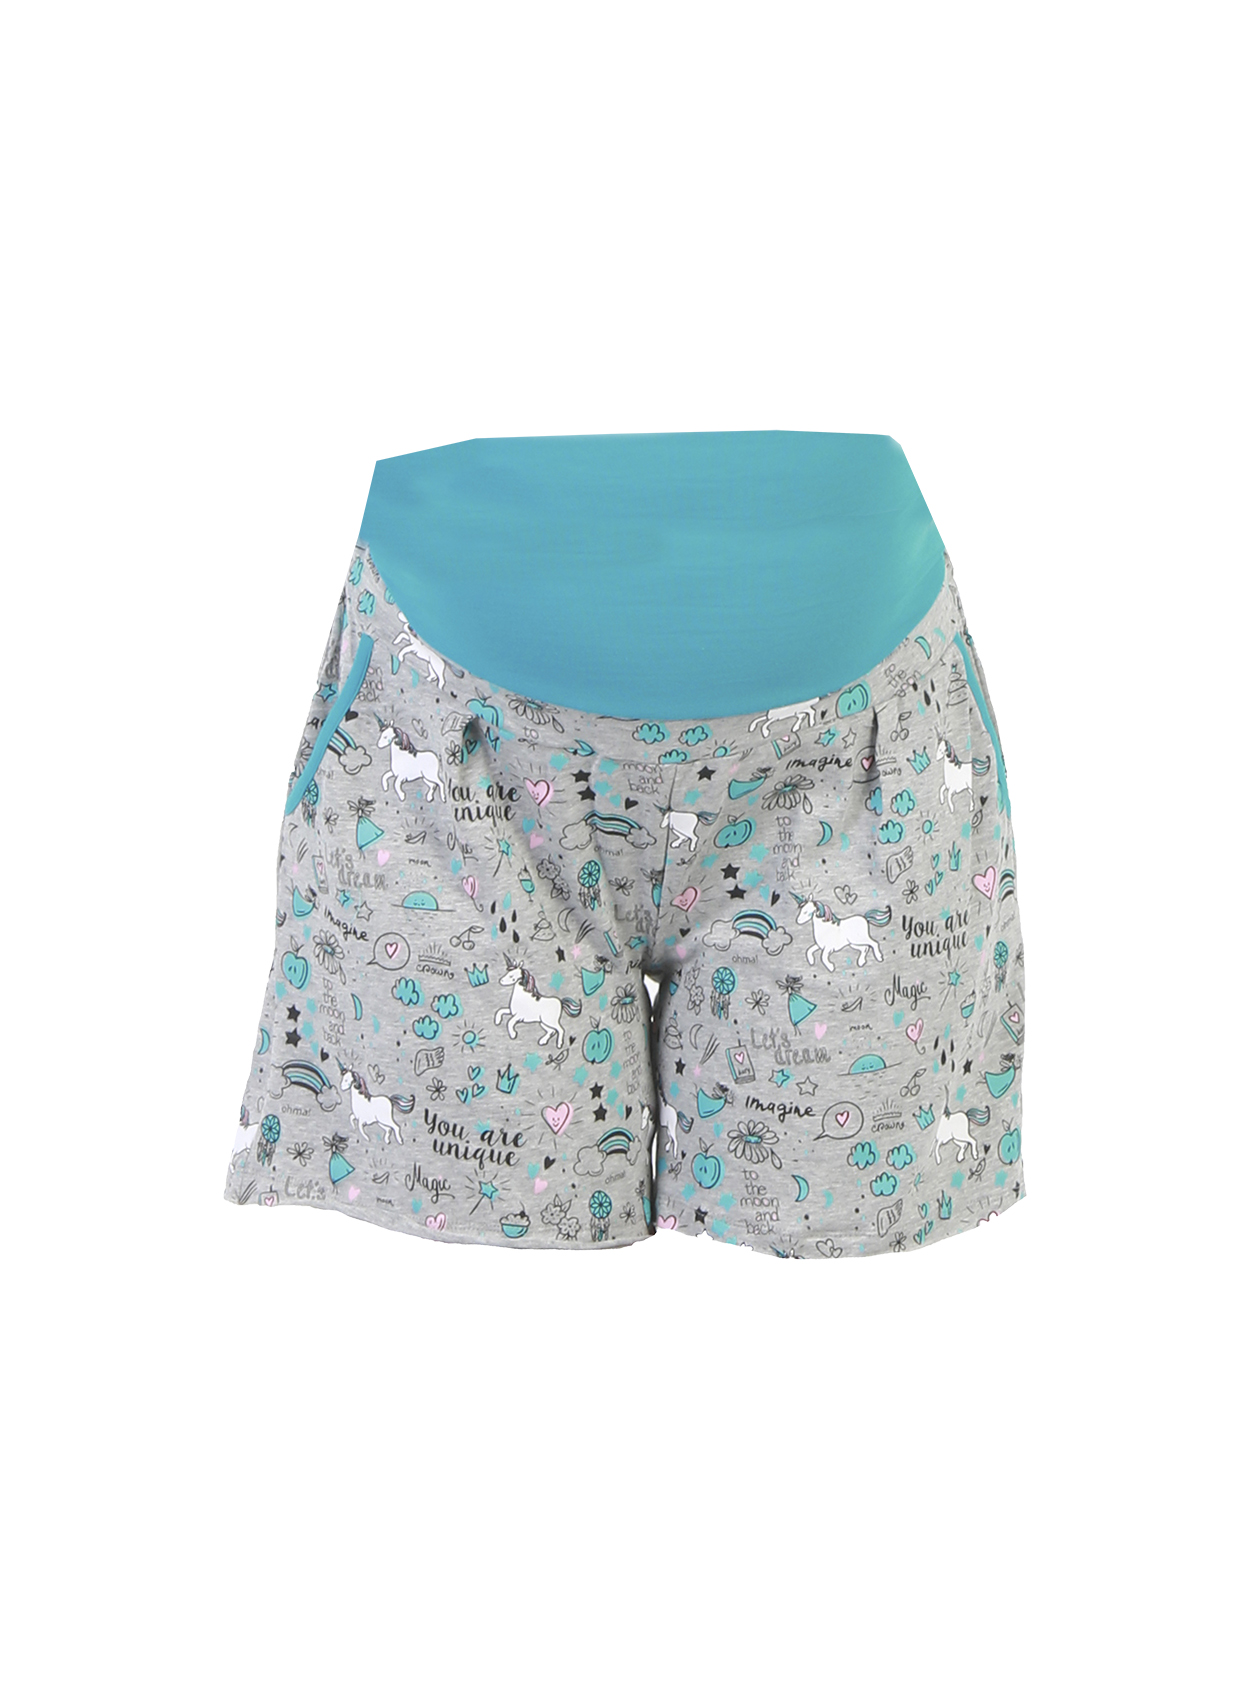 Short pijama estampado